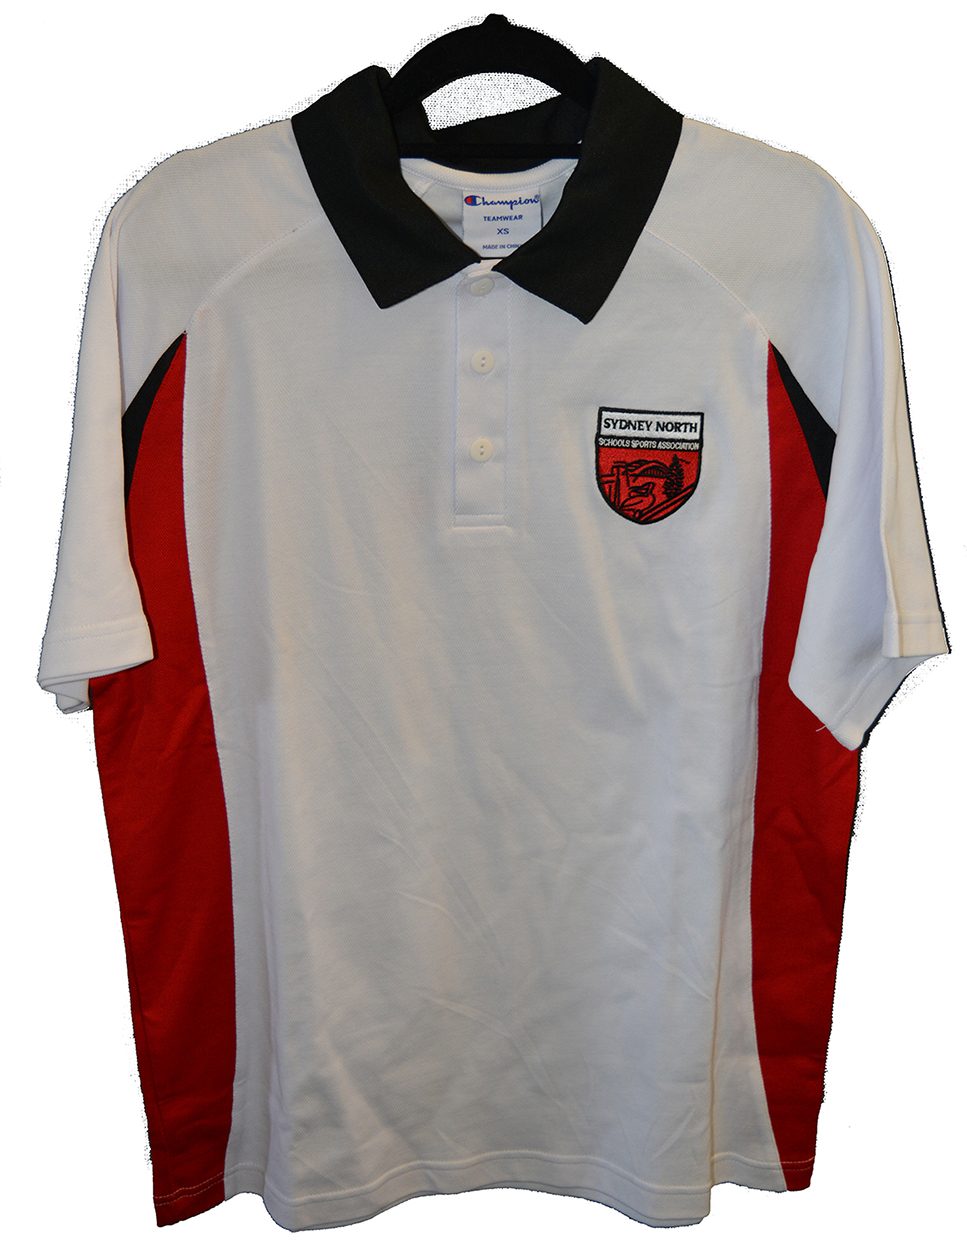 White Polo Shirt - SNSSA team apparel